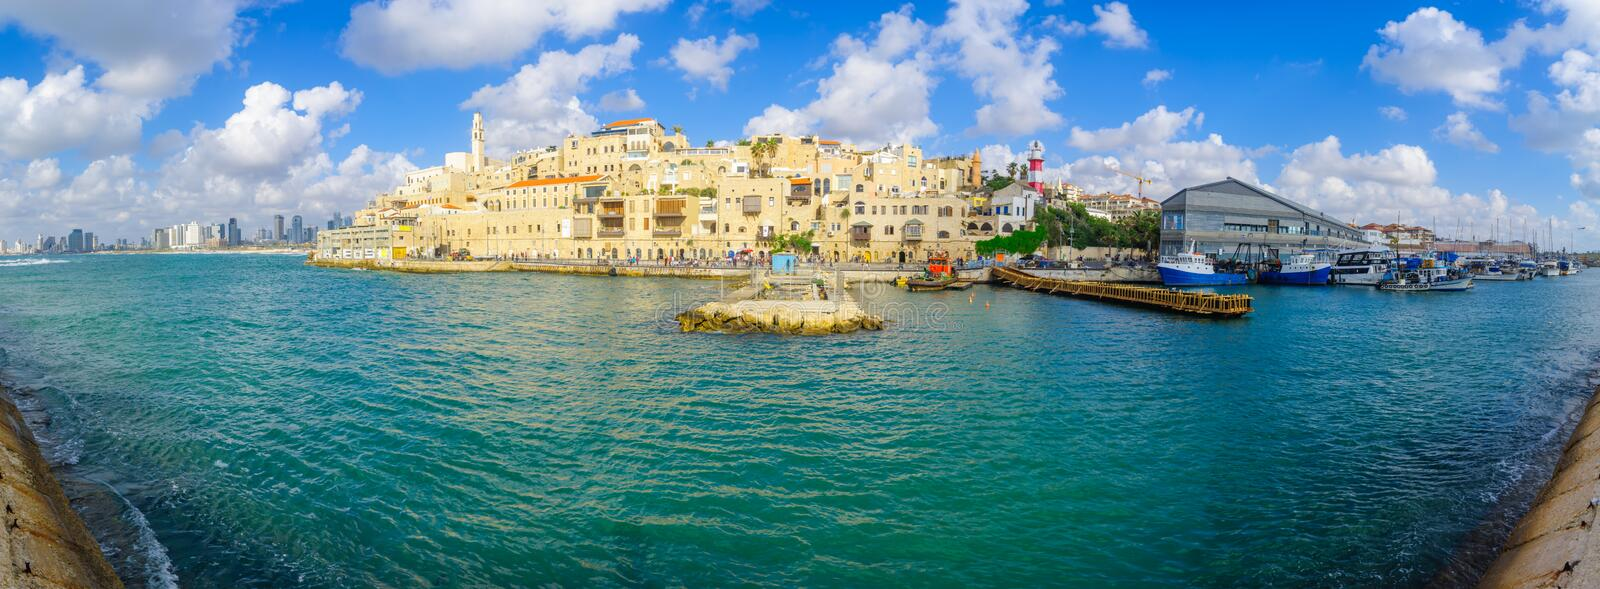 Jaffa port and of the old city of Jaffa royalty free stock photos